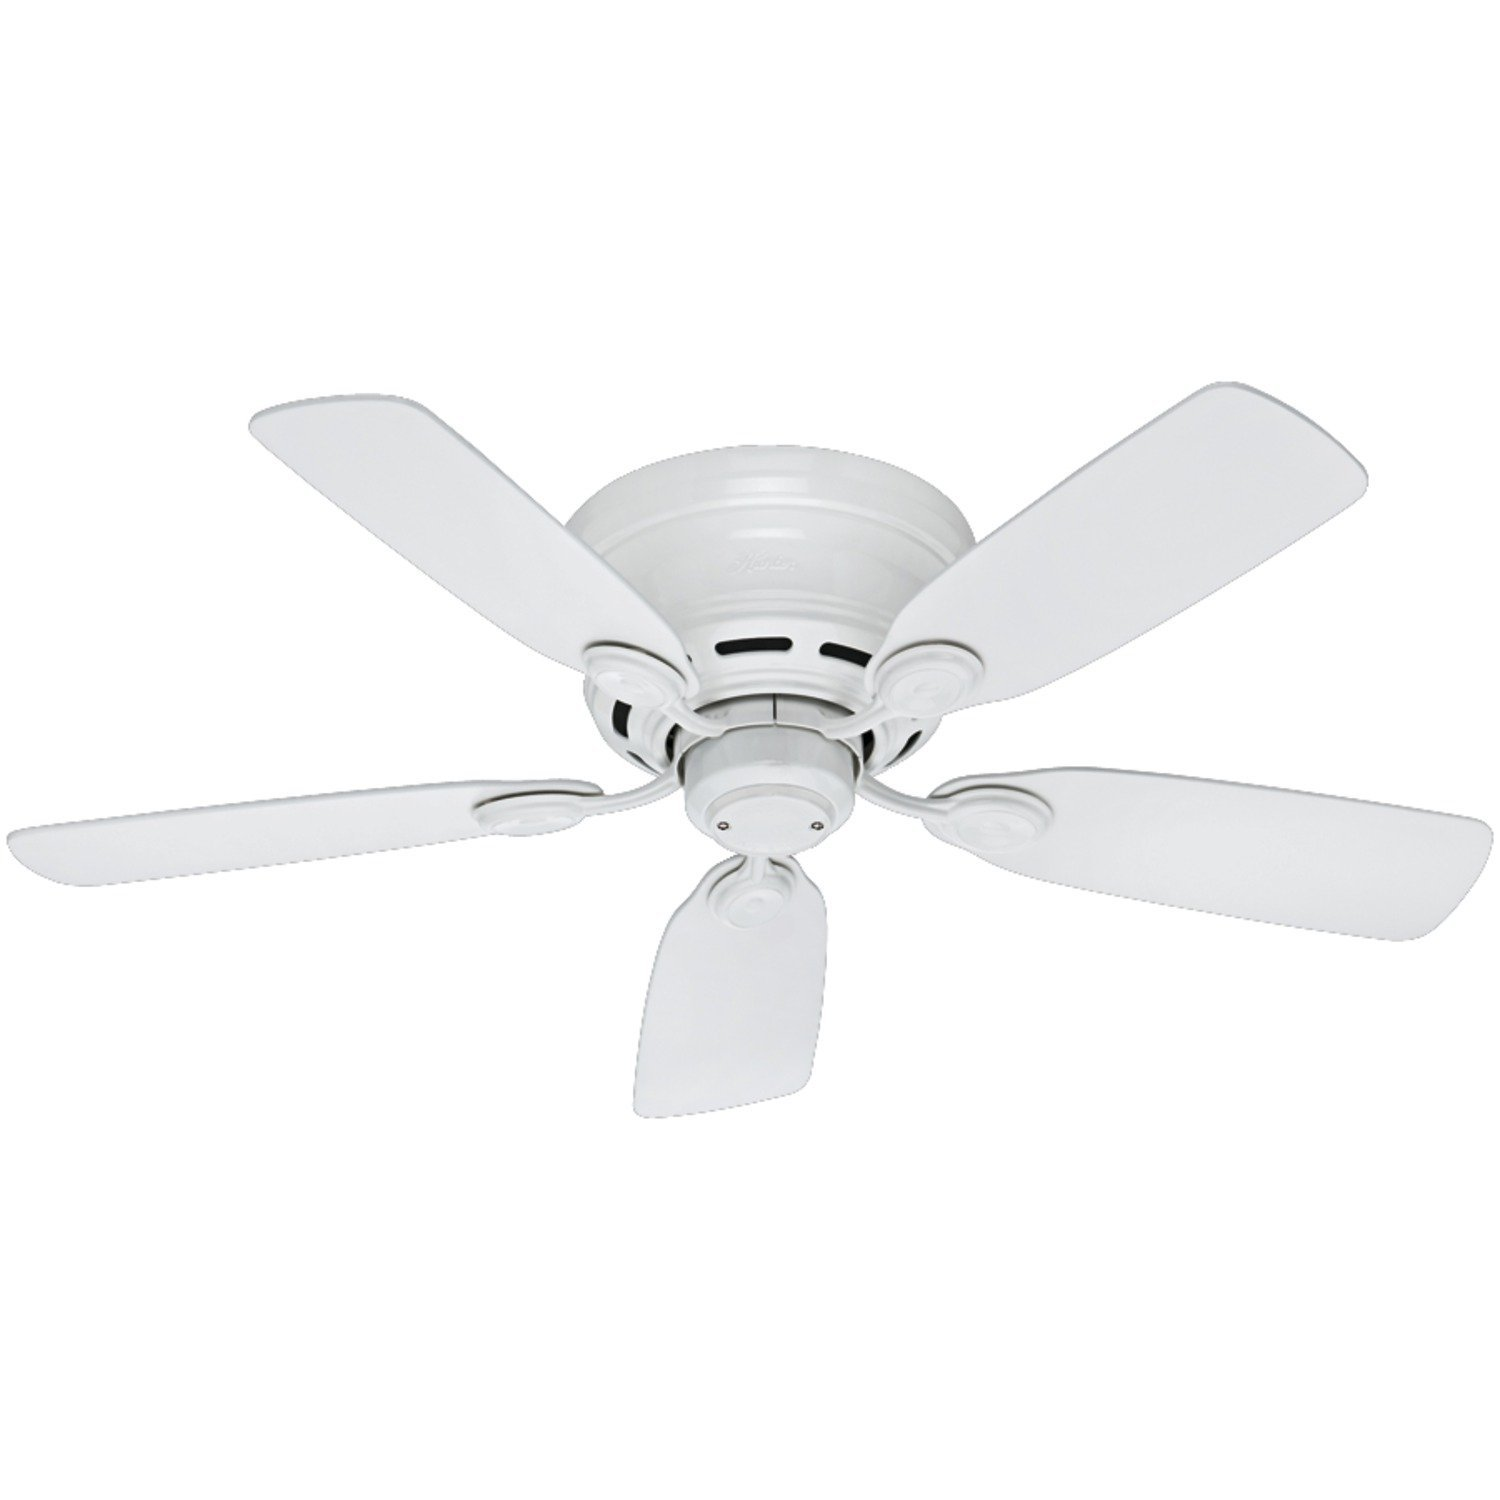 Hunter 51059 Low Profile IV 5-Blade Ceiling Fan, 42-Inch, White